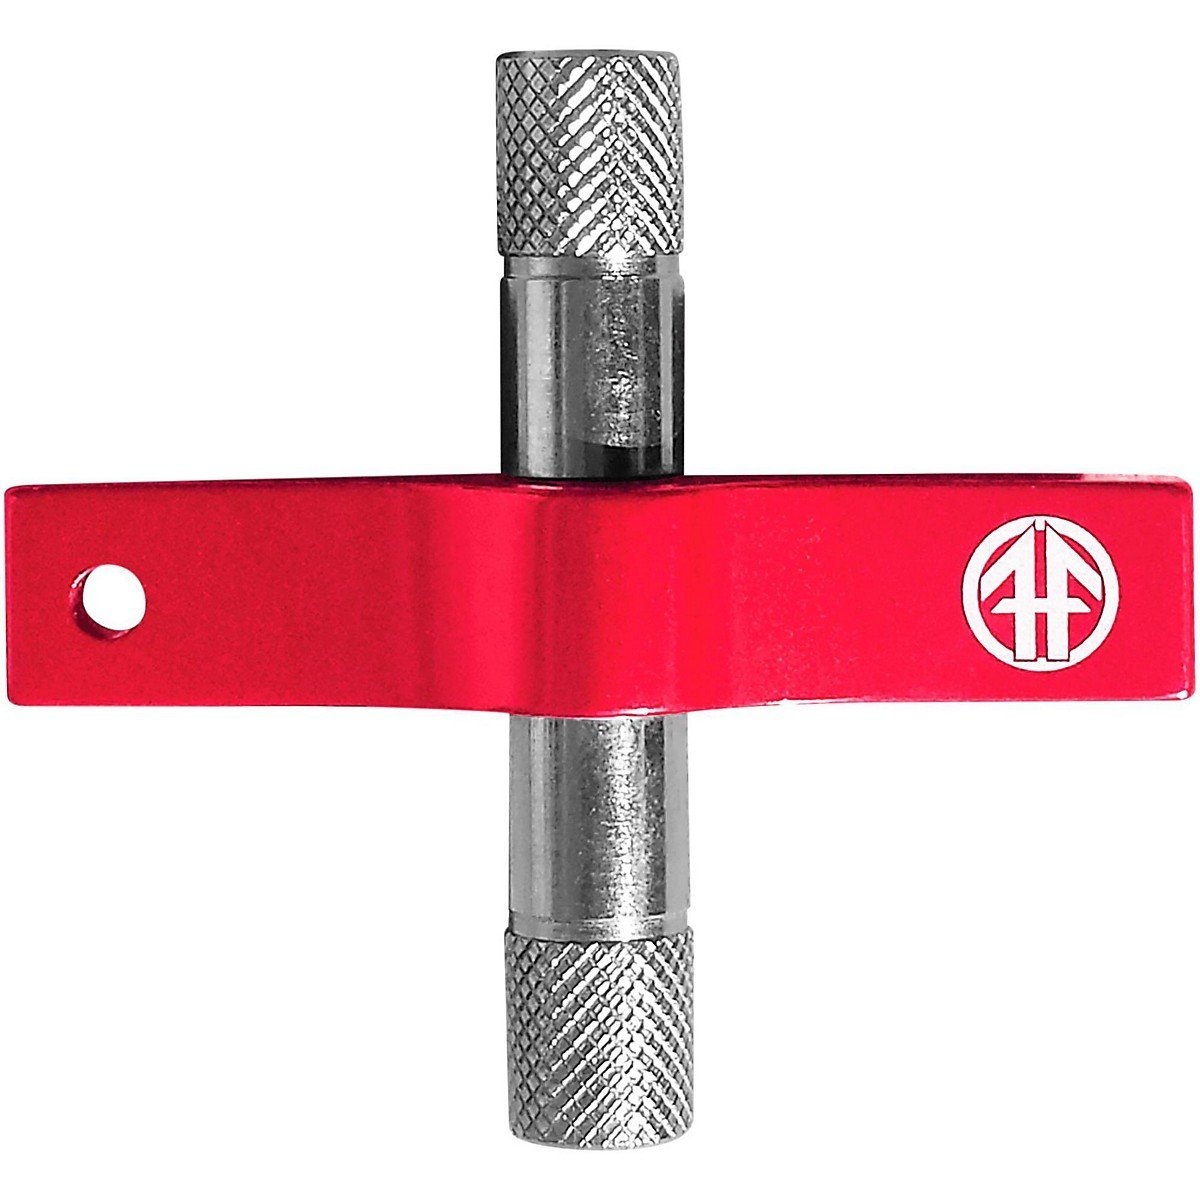 Fire Fly Dynamic Tuning Device Gearless Ratchet Drum Key, This redesigned Firefly takes... by